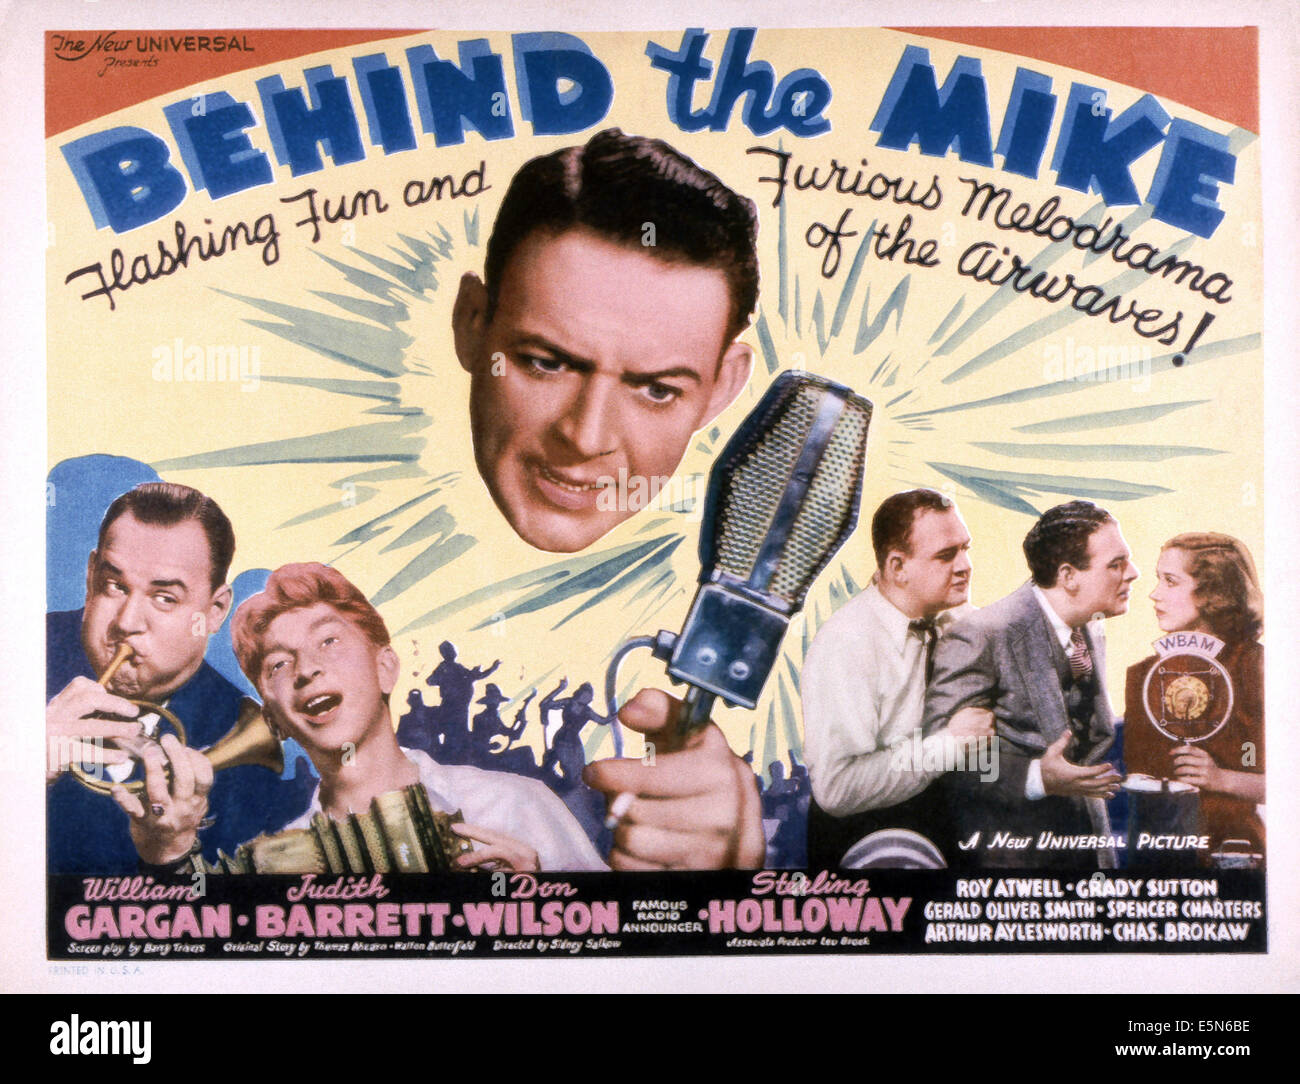 BEHIND THE MIKE, from left: Don Wilson, Sterling Holloway, William Gargan, Don Wilson William Gargan, Judith Barrett, - Stock Image